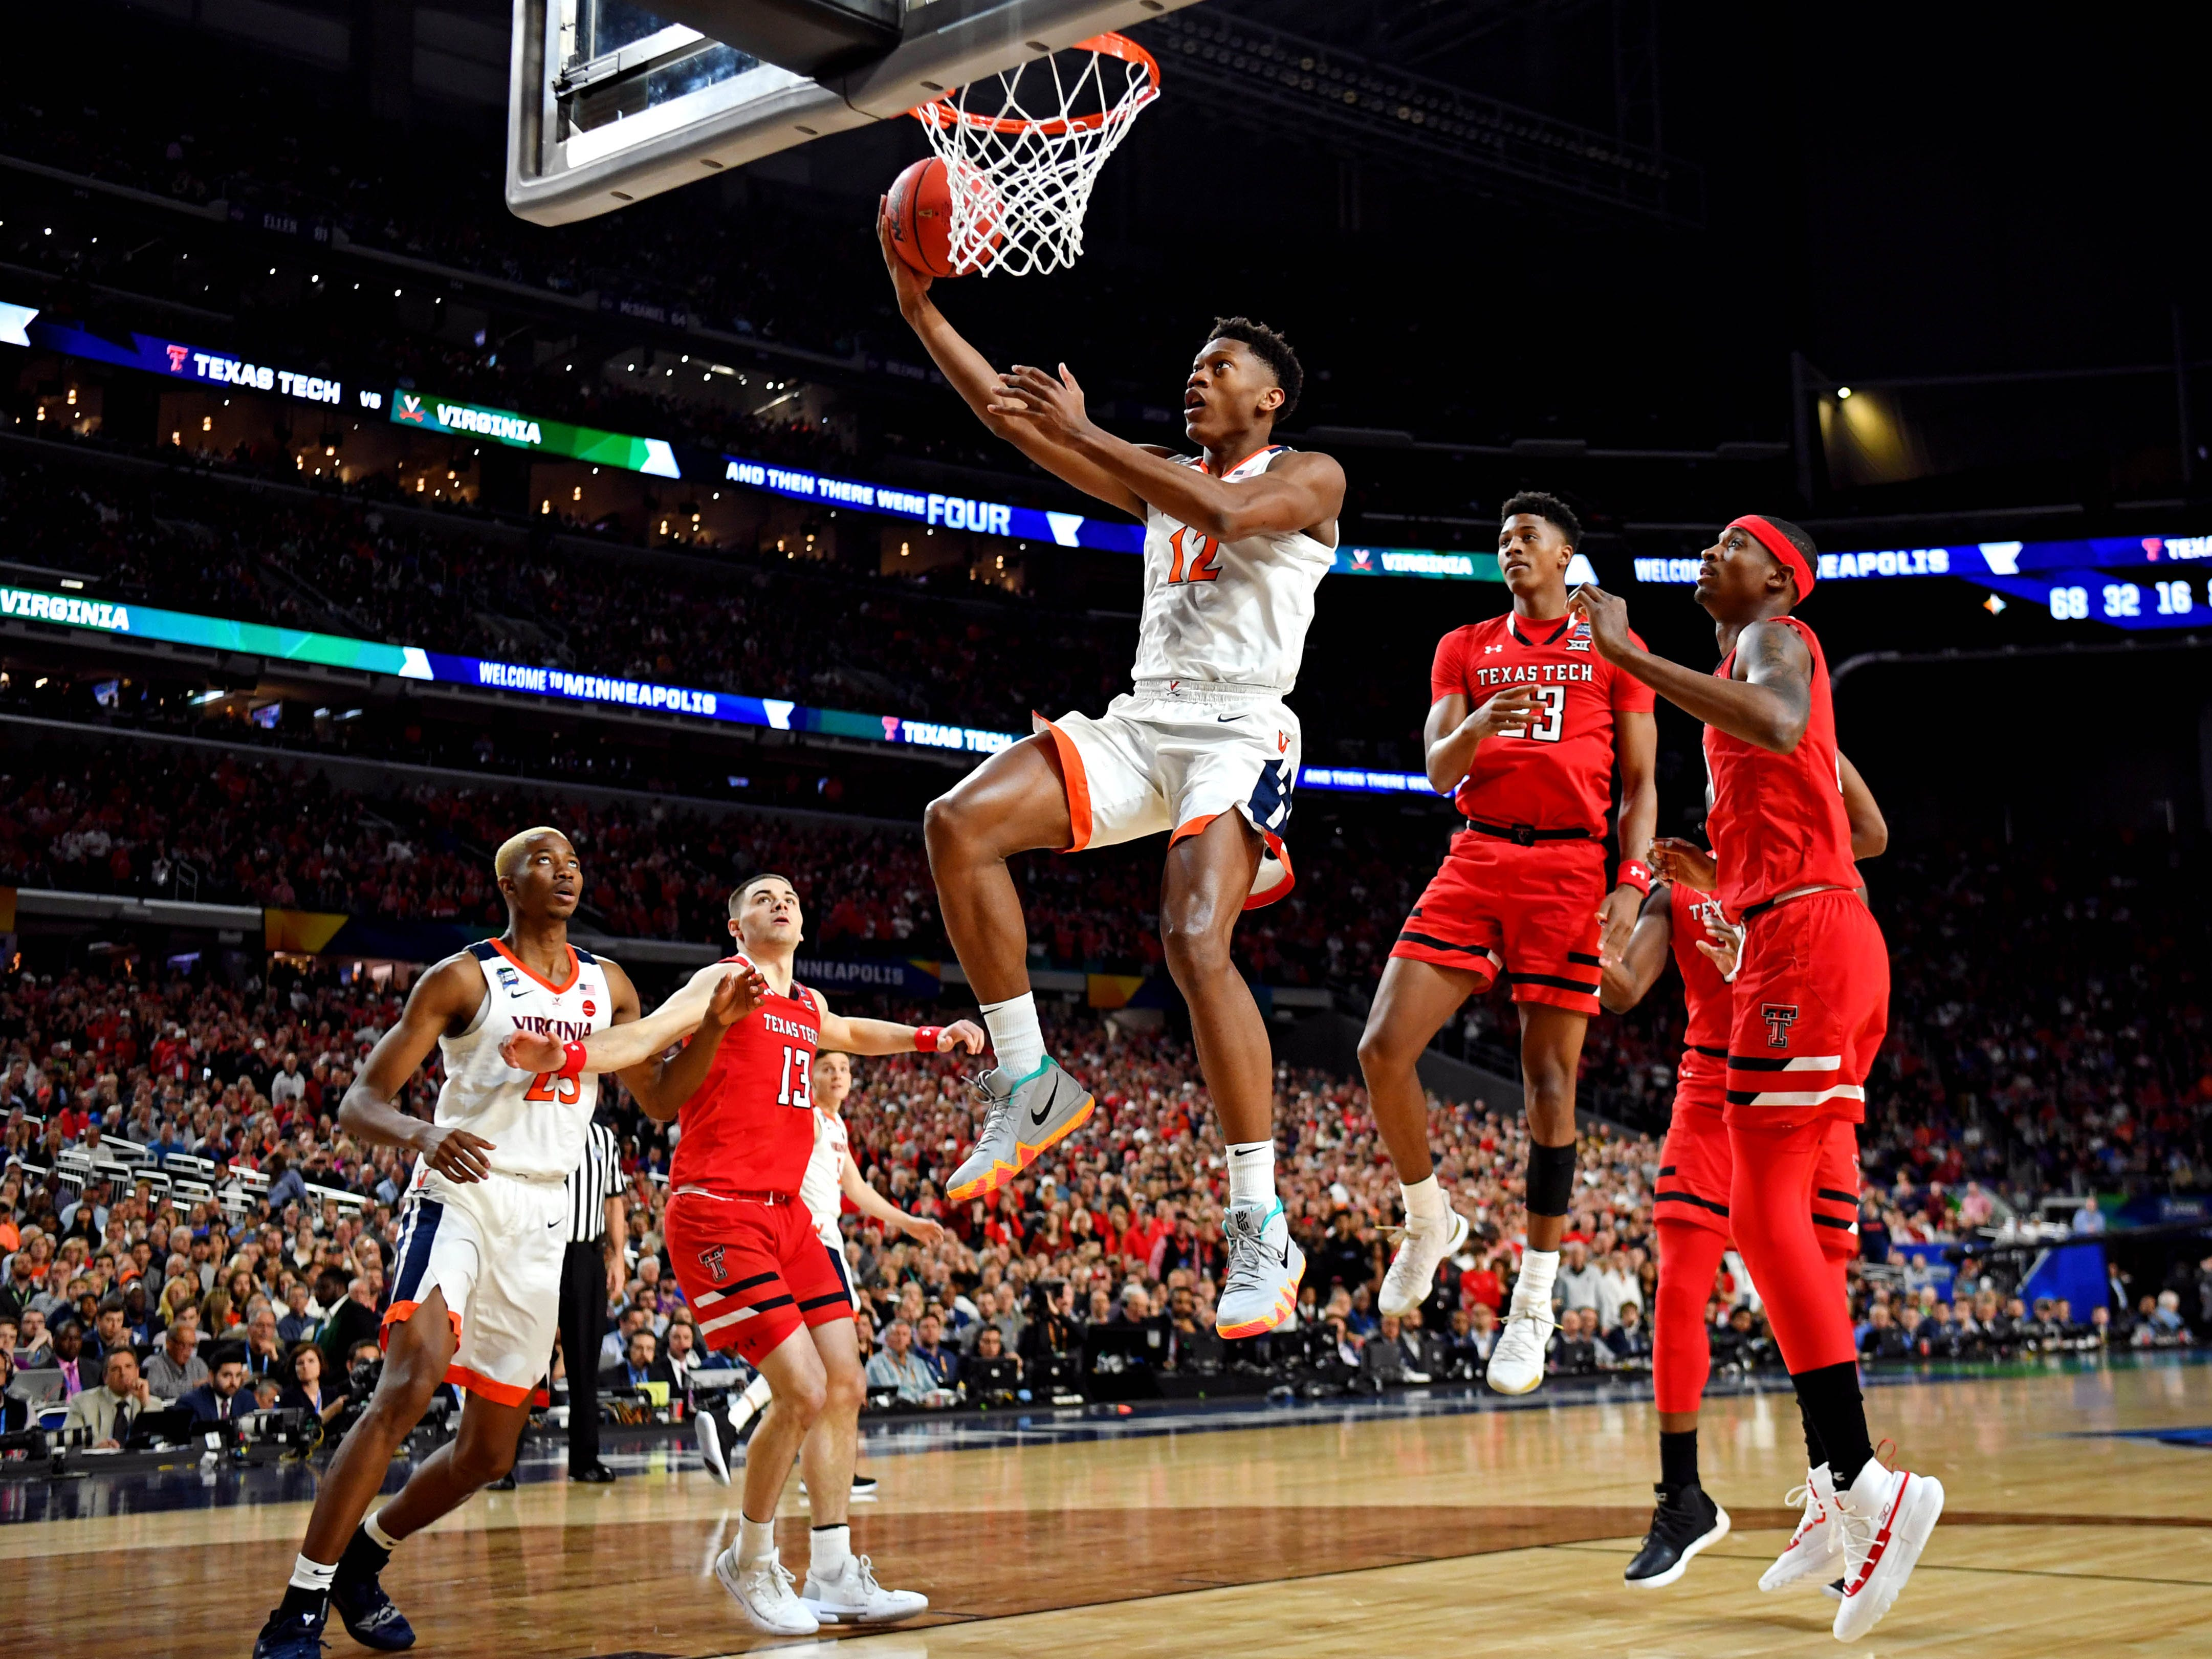 Virginia's De'Andre Hunter (12) shoots the ball against Texas Tech during the first half in the championship game.